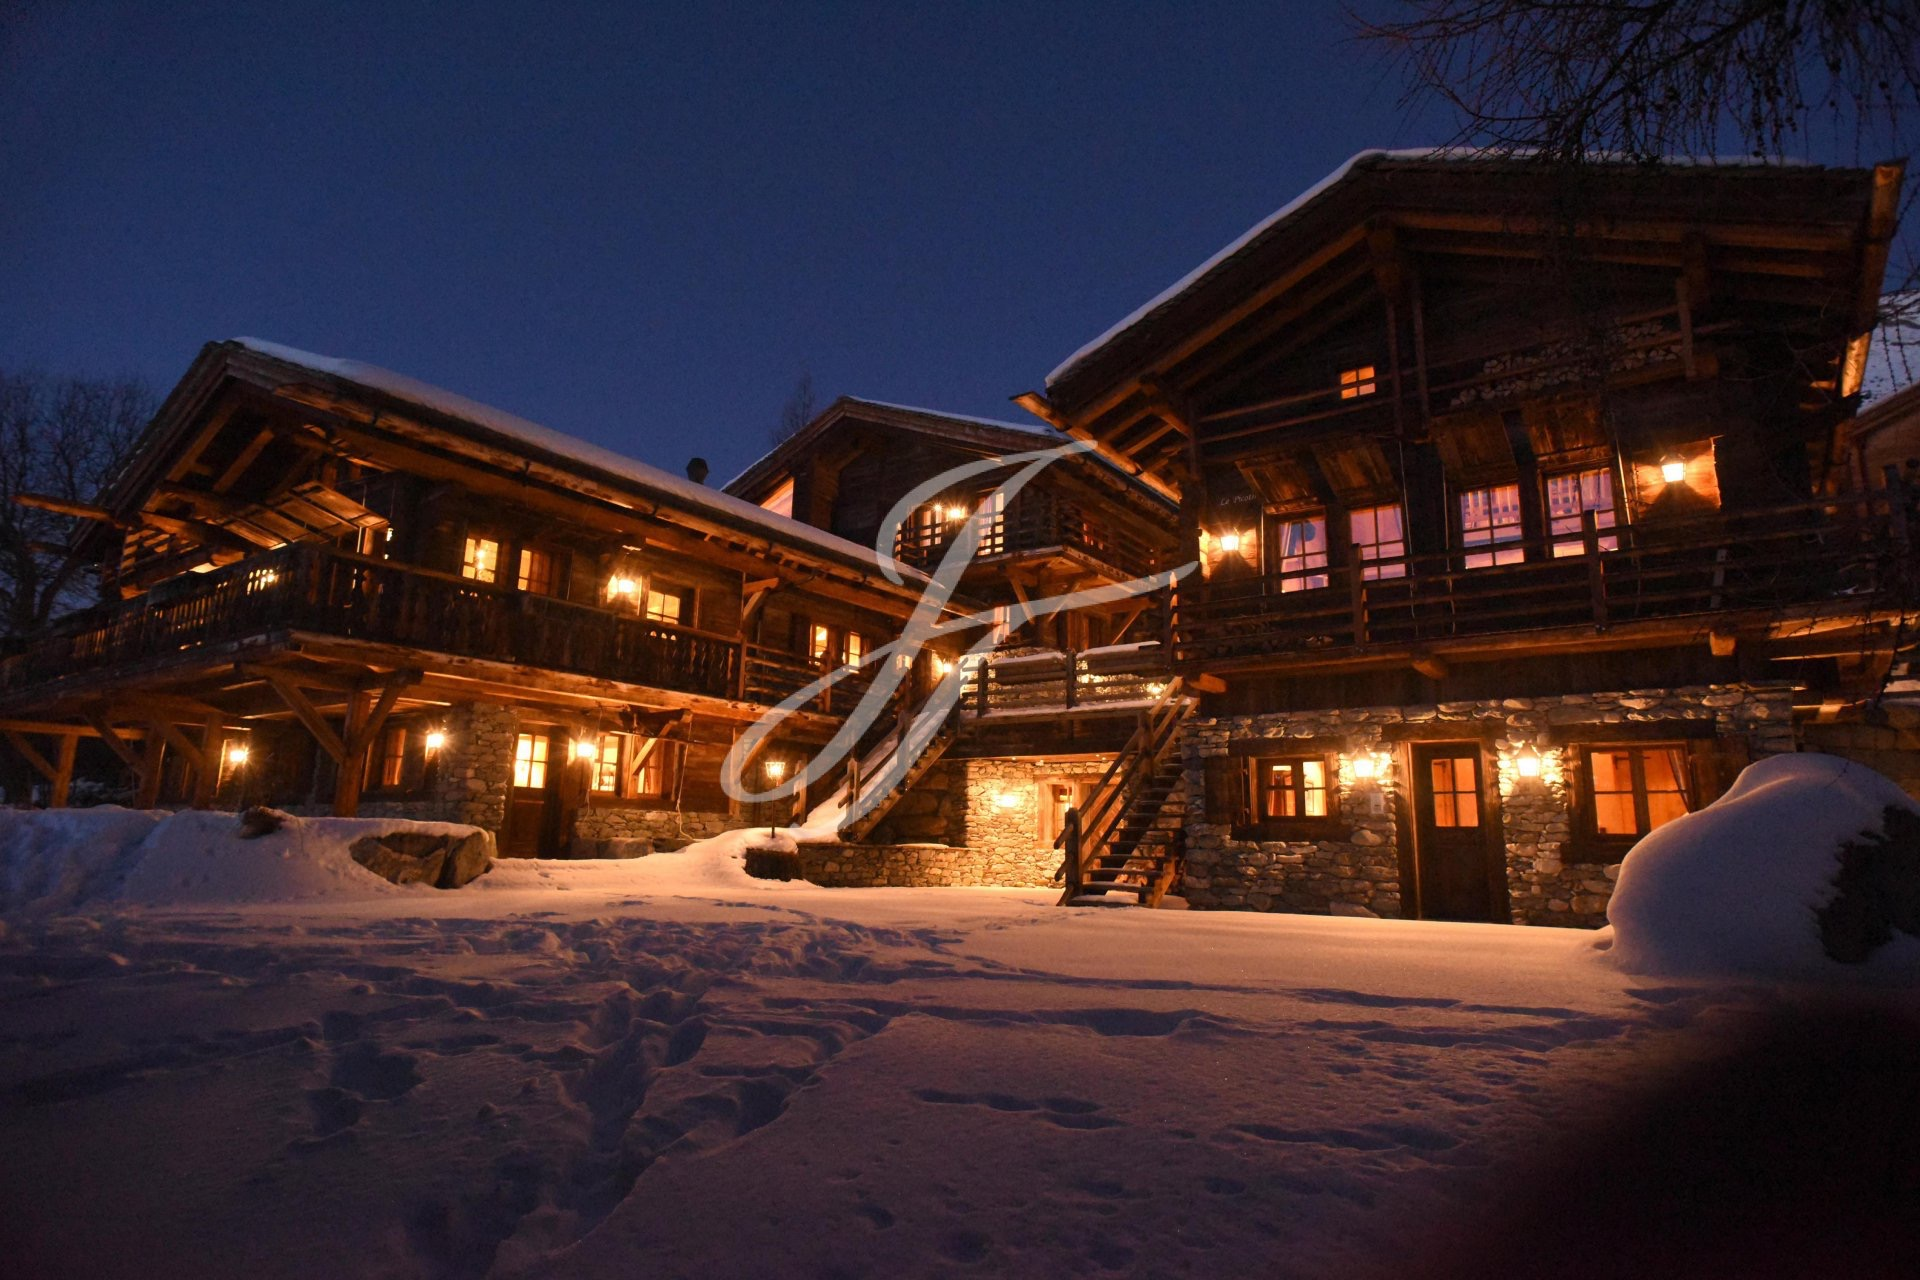 Luxurious chalet in Switzerland, ski resort Verbier, Alps